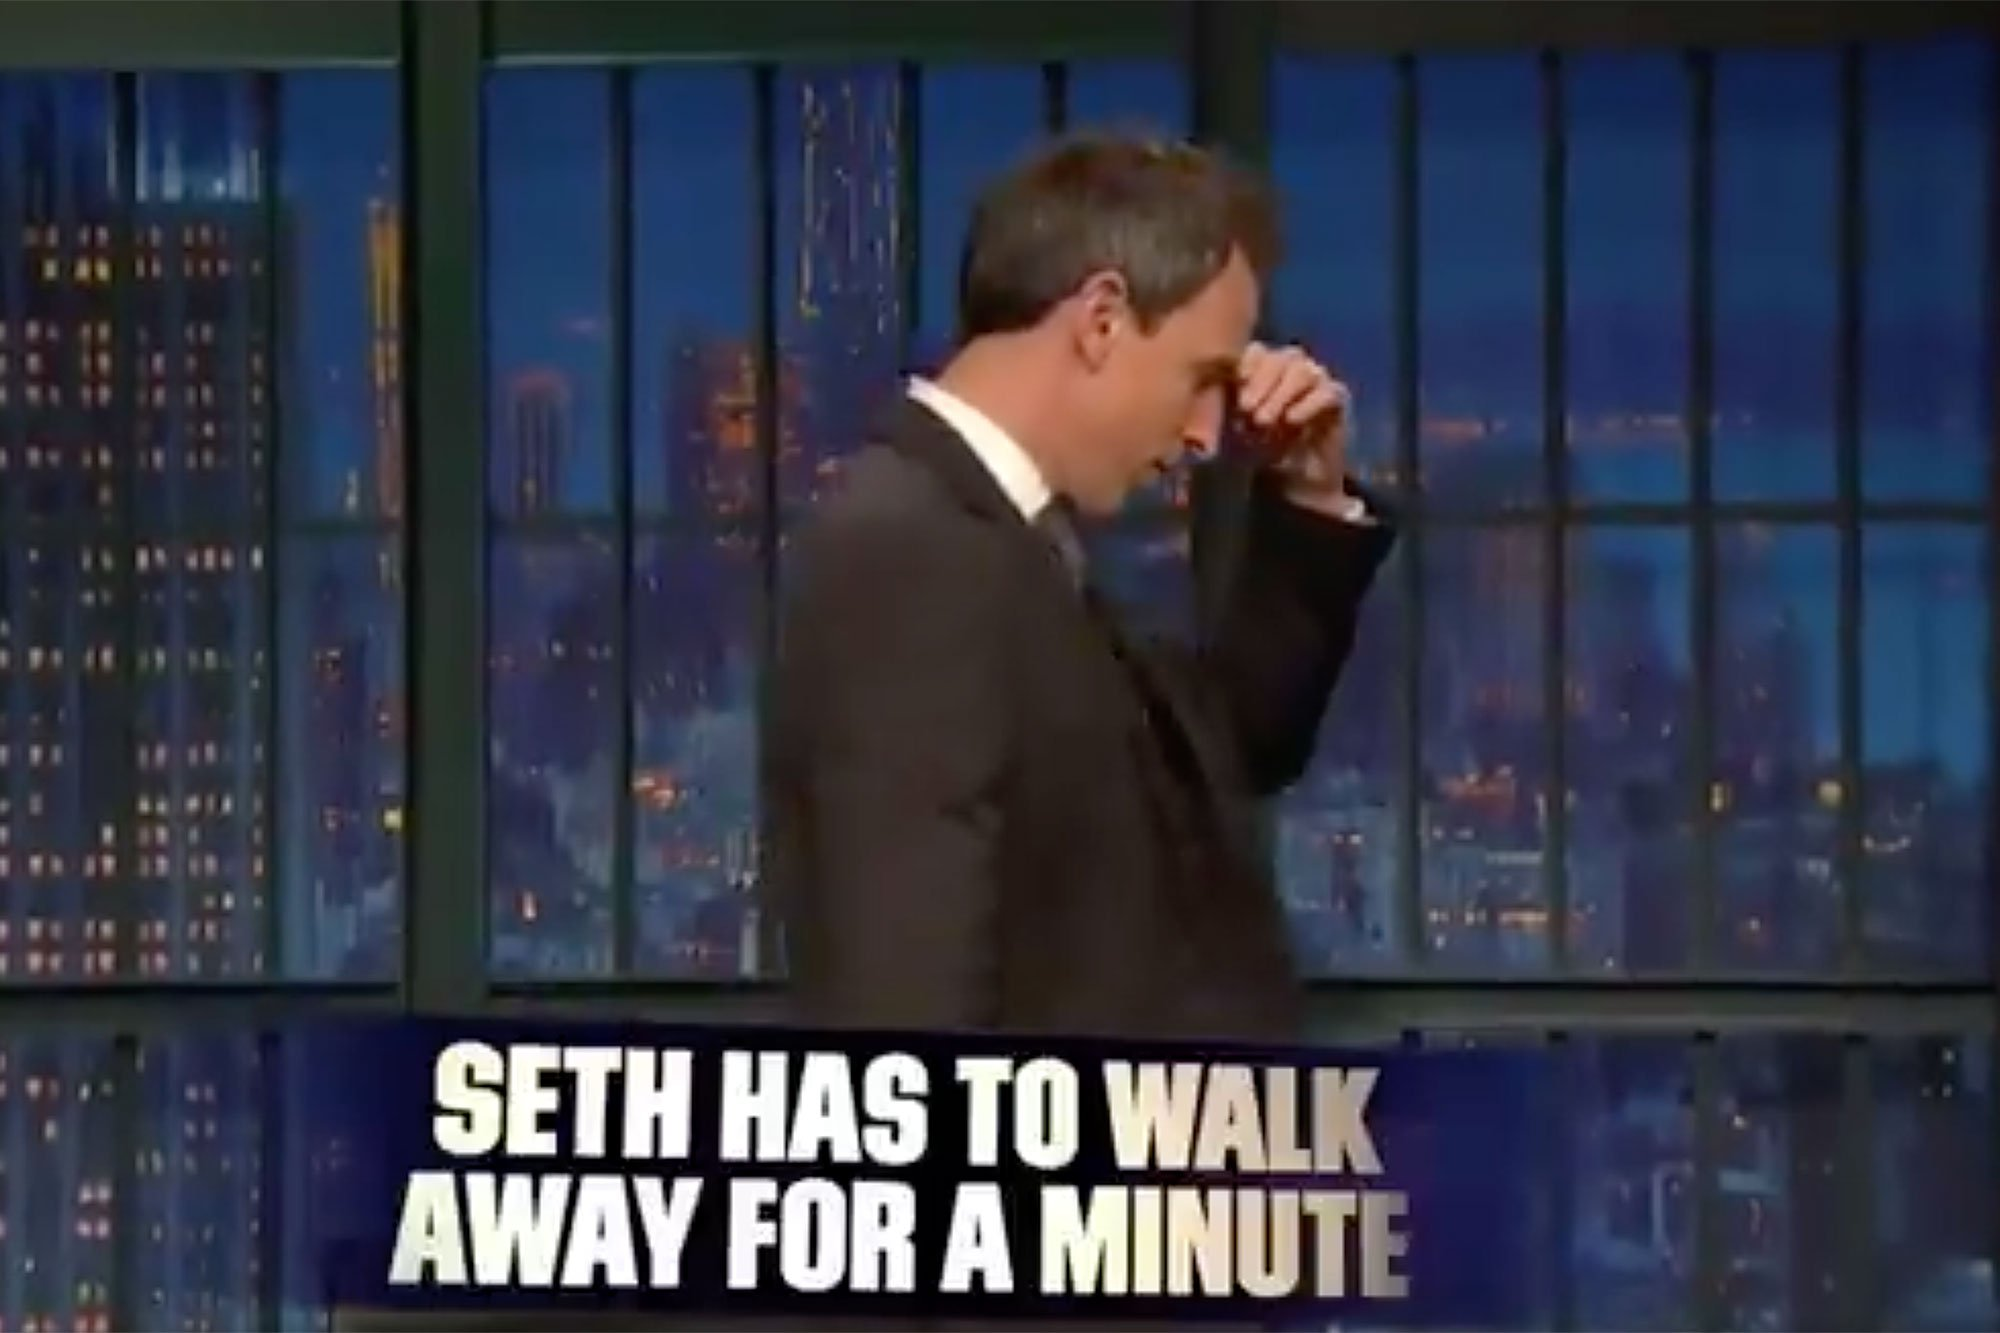 Trump shithole comment causes Seth Meyers to walk away from desk